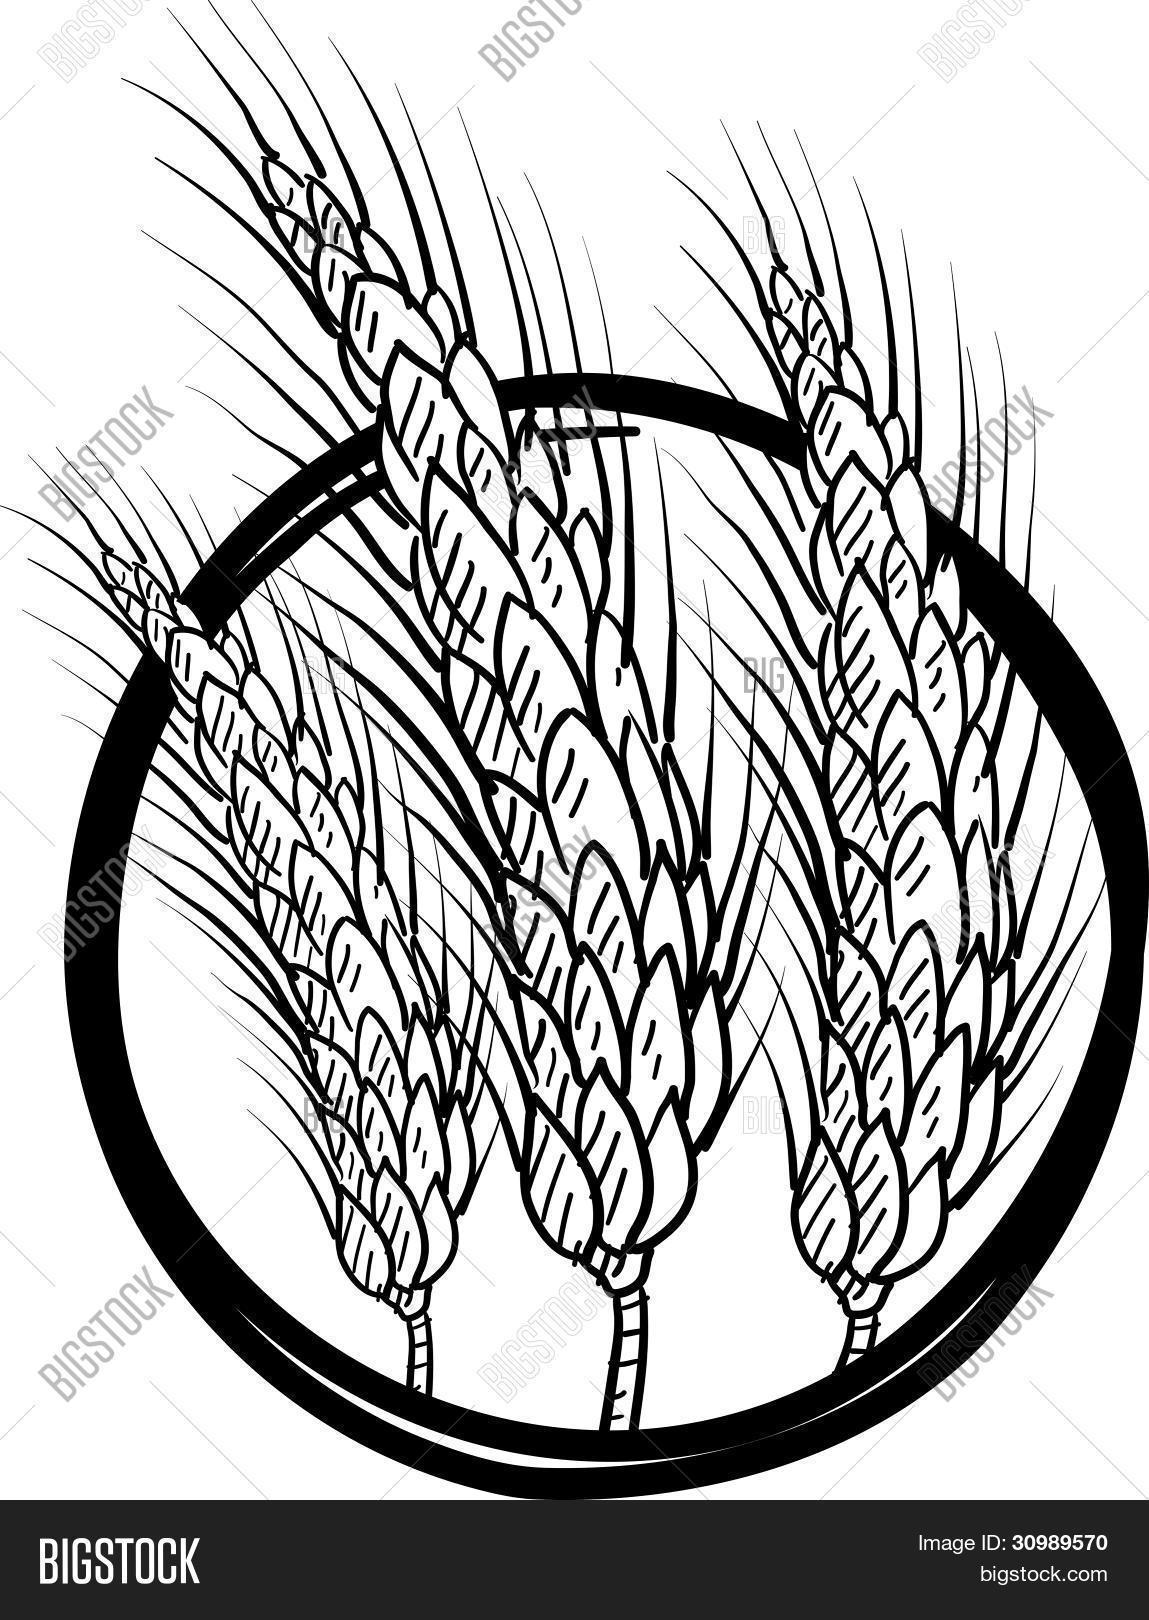 Wheat Line Drawing At Getdrawings